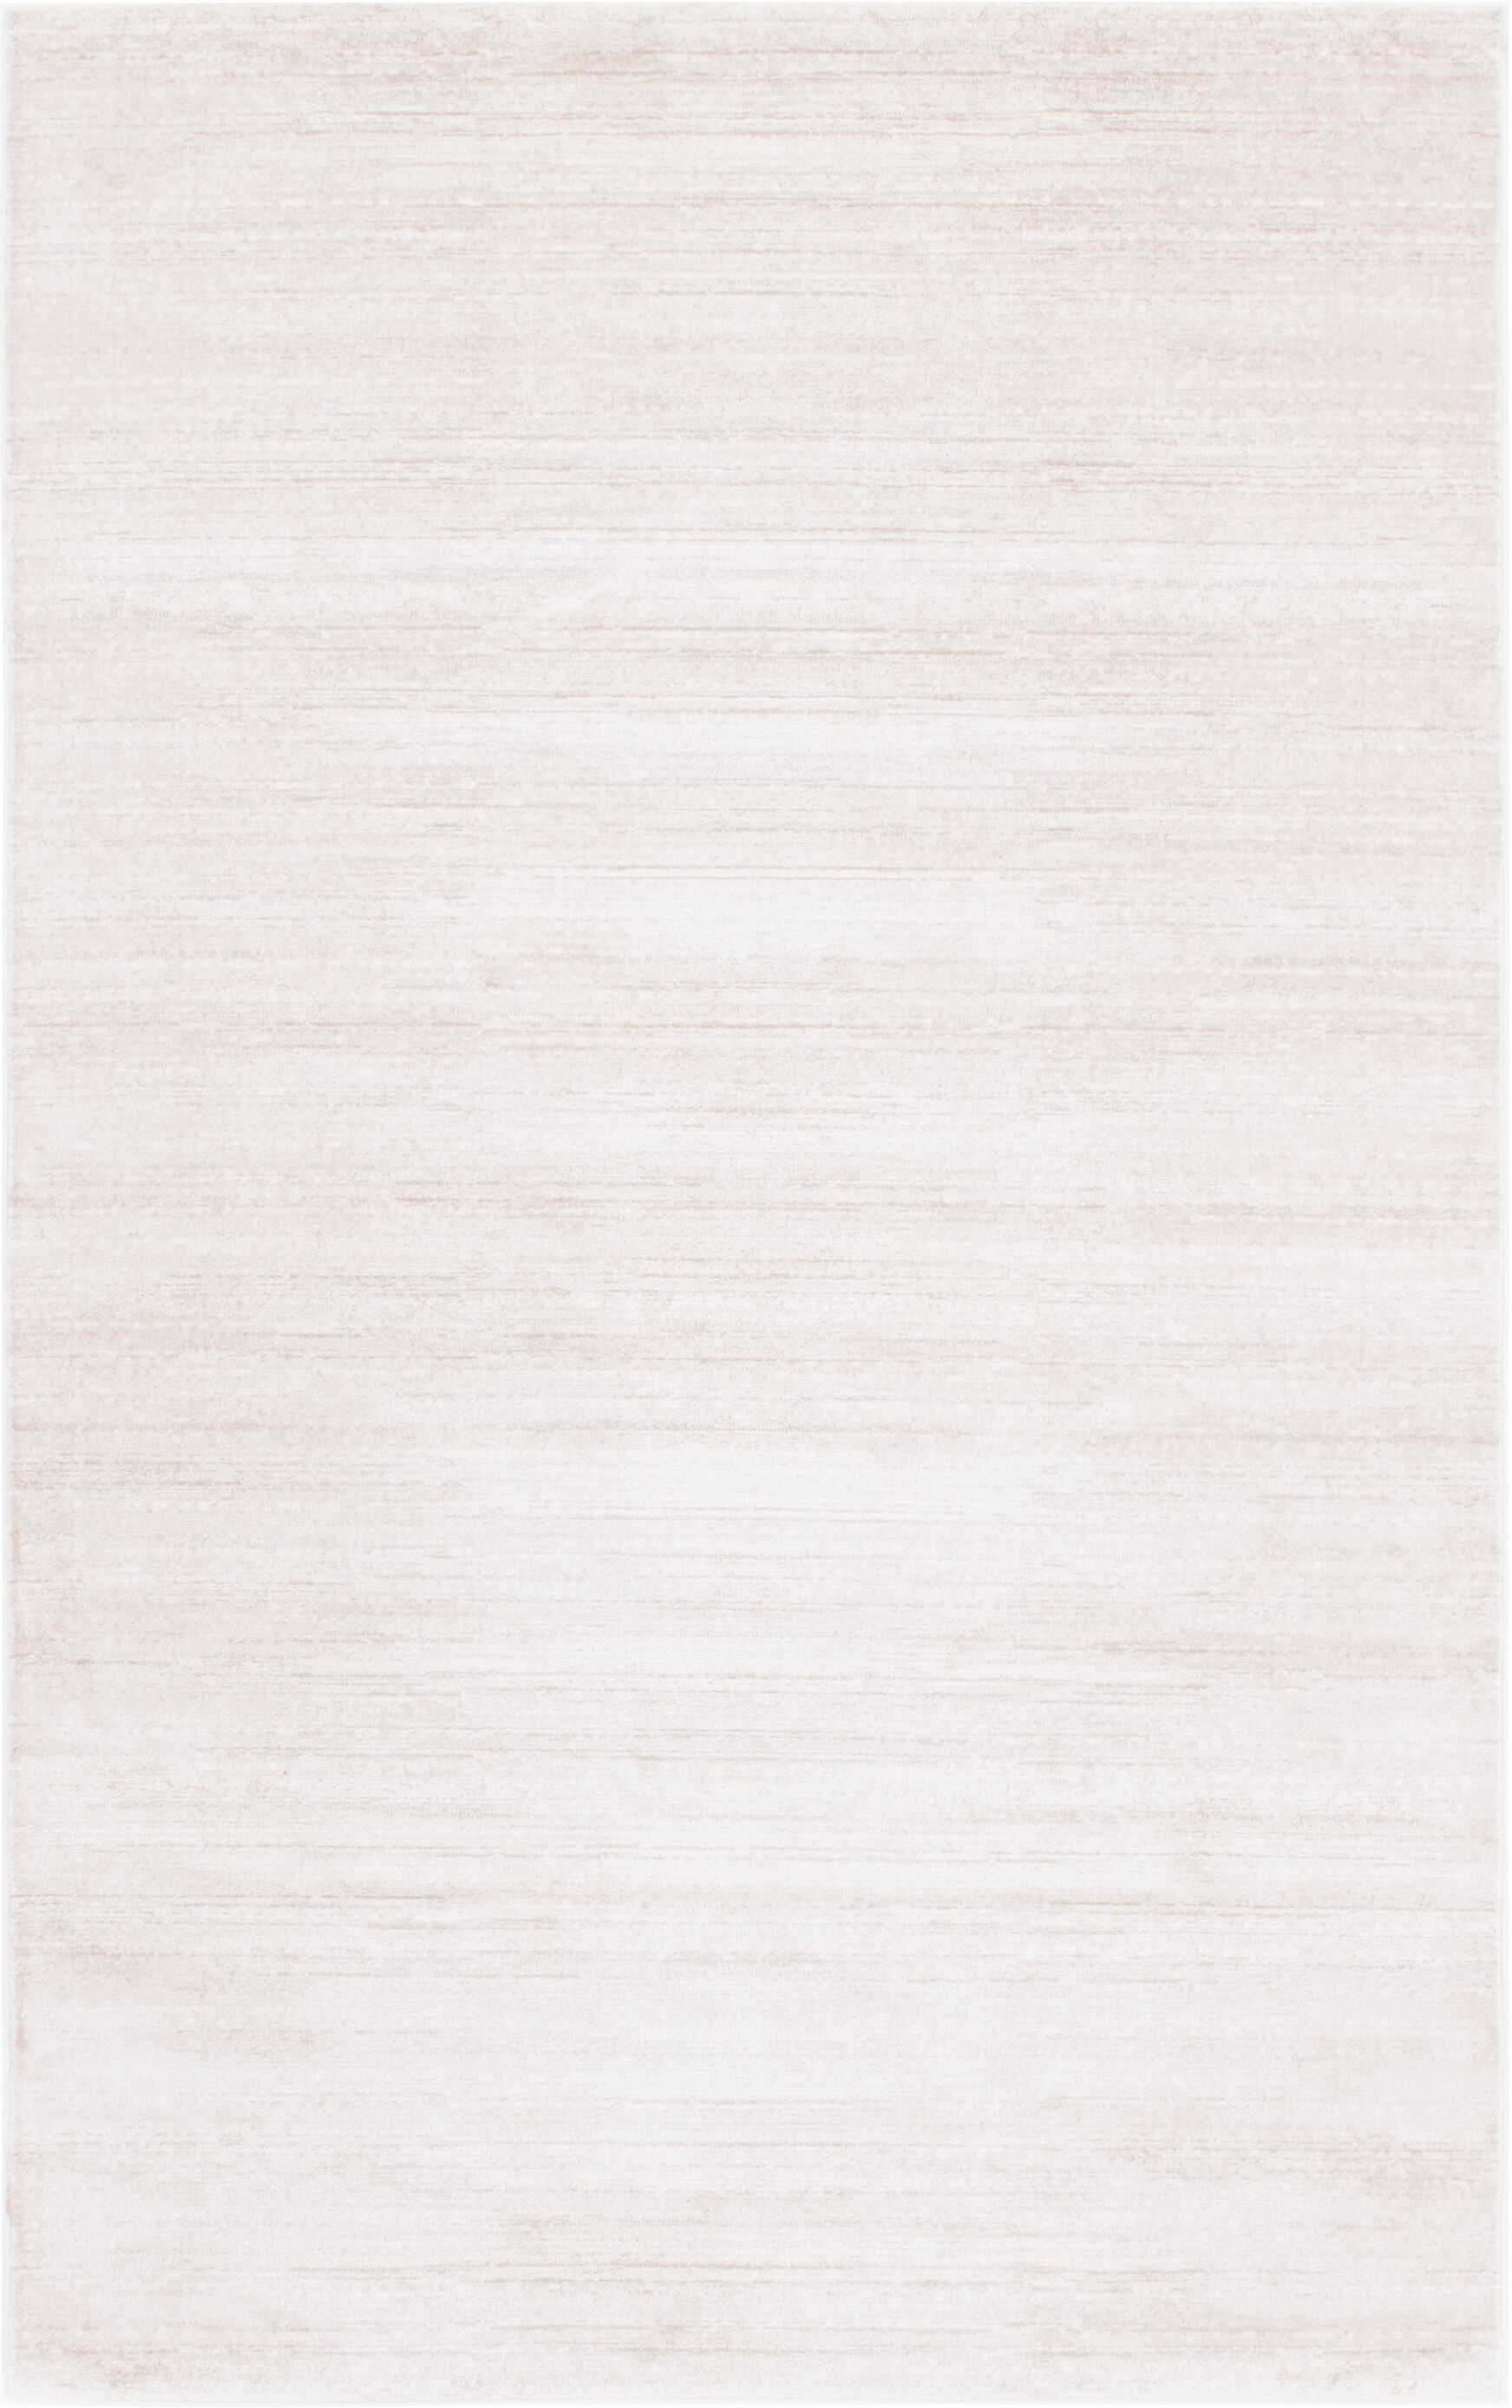 Uptown Madison Avenue Beige Area Rug Rug Size: Rectangle 5' x 8'